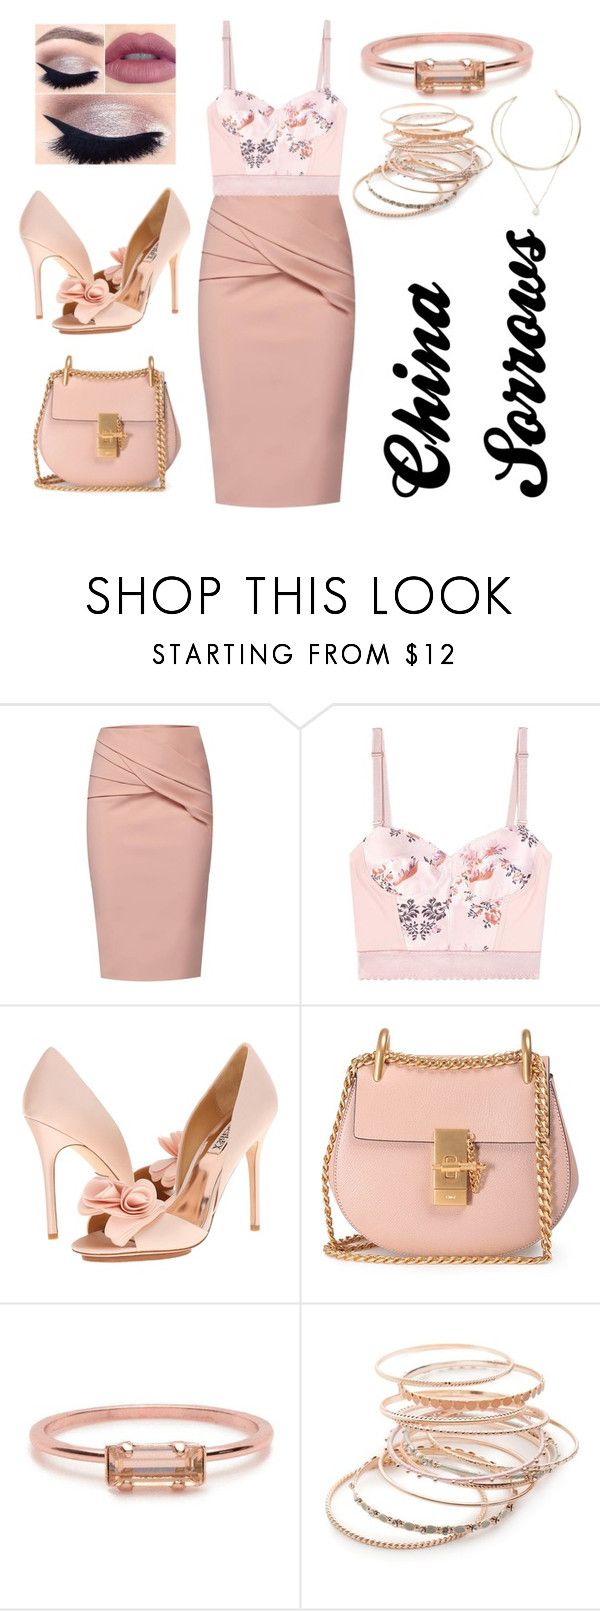 """""""China Sorrows business 8"""" by dexyrie ❤ liked on Polyvore featuring tarte, WtR, STELLA McCARTNEY, Badgley Mischka, Chloé, Bing Bang, Red Camel and Natasha"""